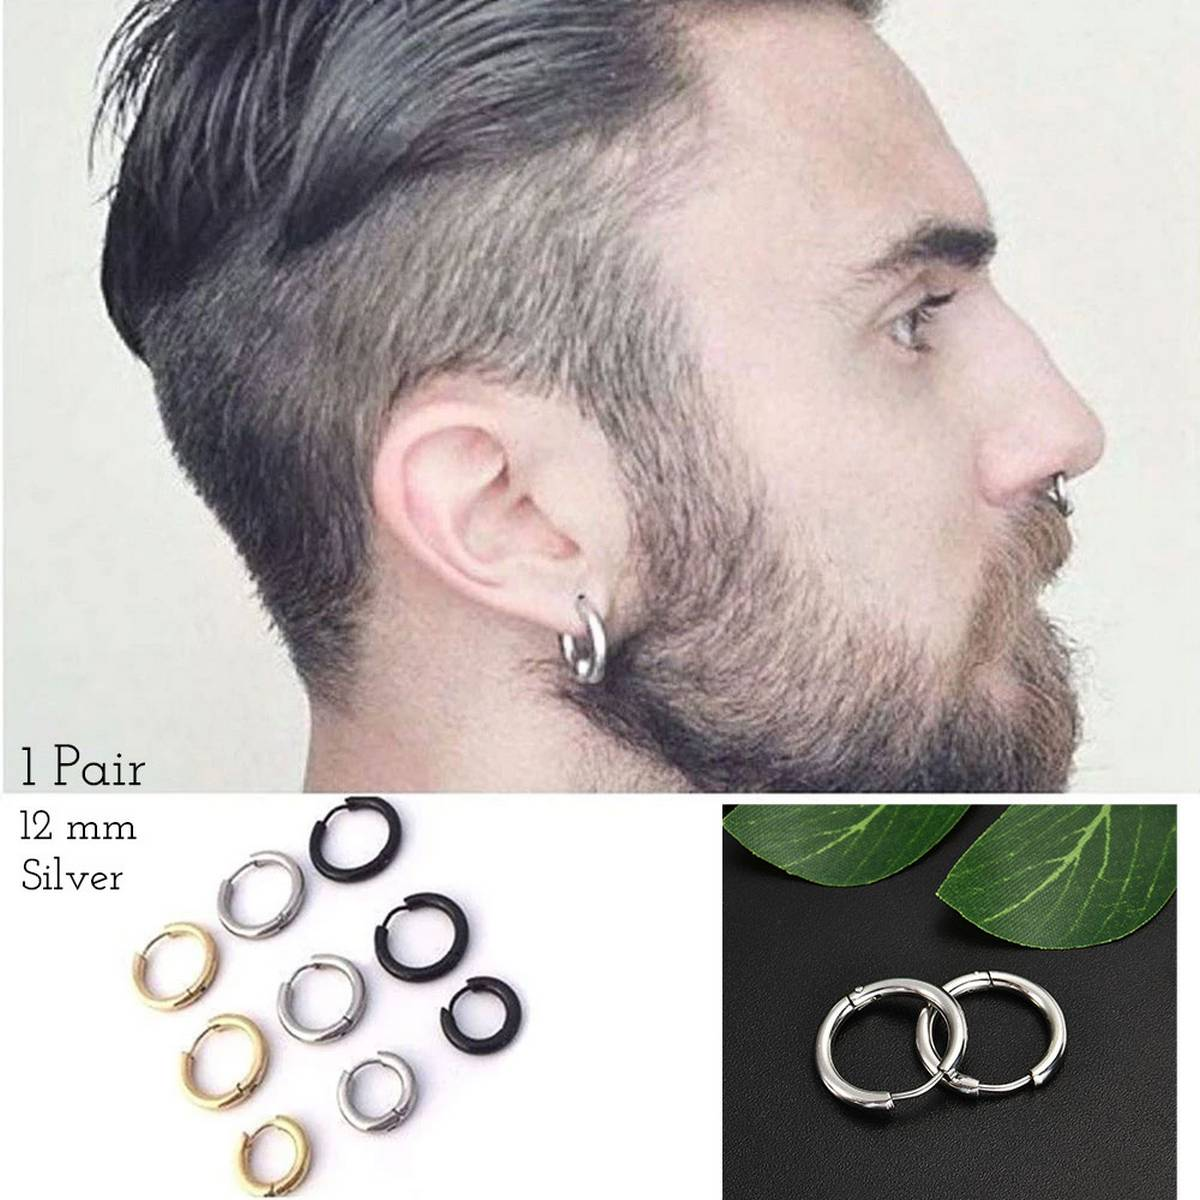 Fashion 2021 Men Punk Gothic Stainless Steel Silver Simple Round Stud Earrings Lover For Boys Mens and Girls Womens Earing Jewellery Jewelry Gift (1 Pair)